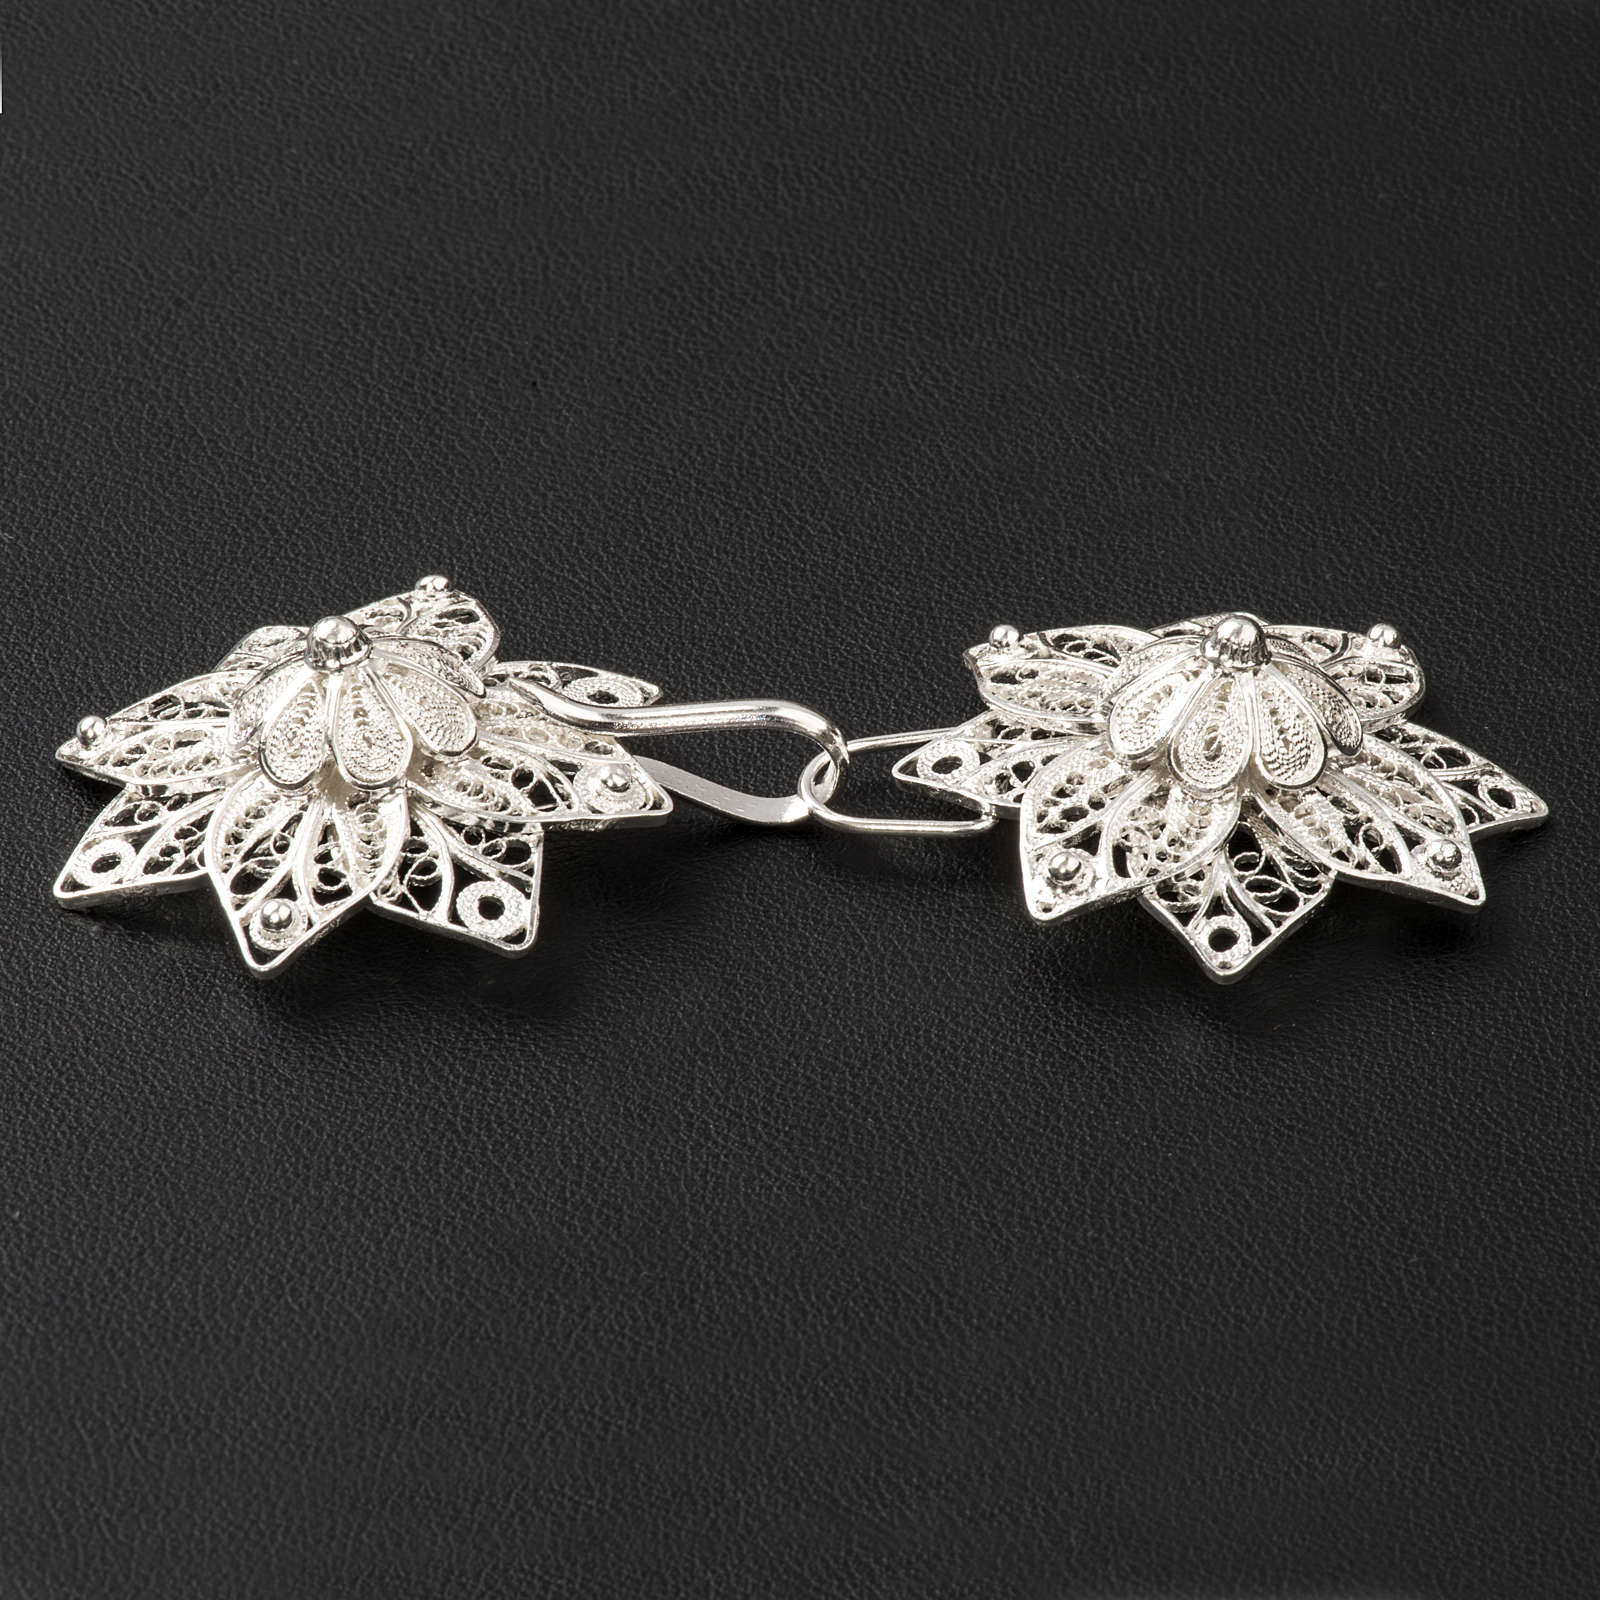 Cope Clasp in silver 800 filigree, star shaped 4